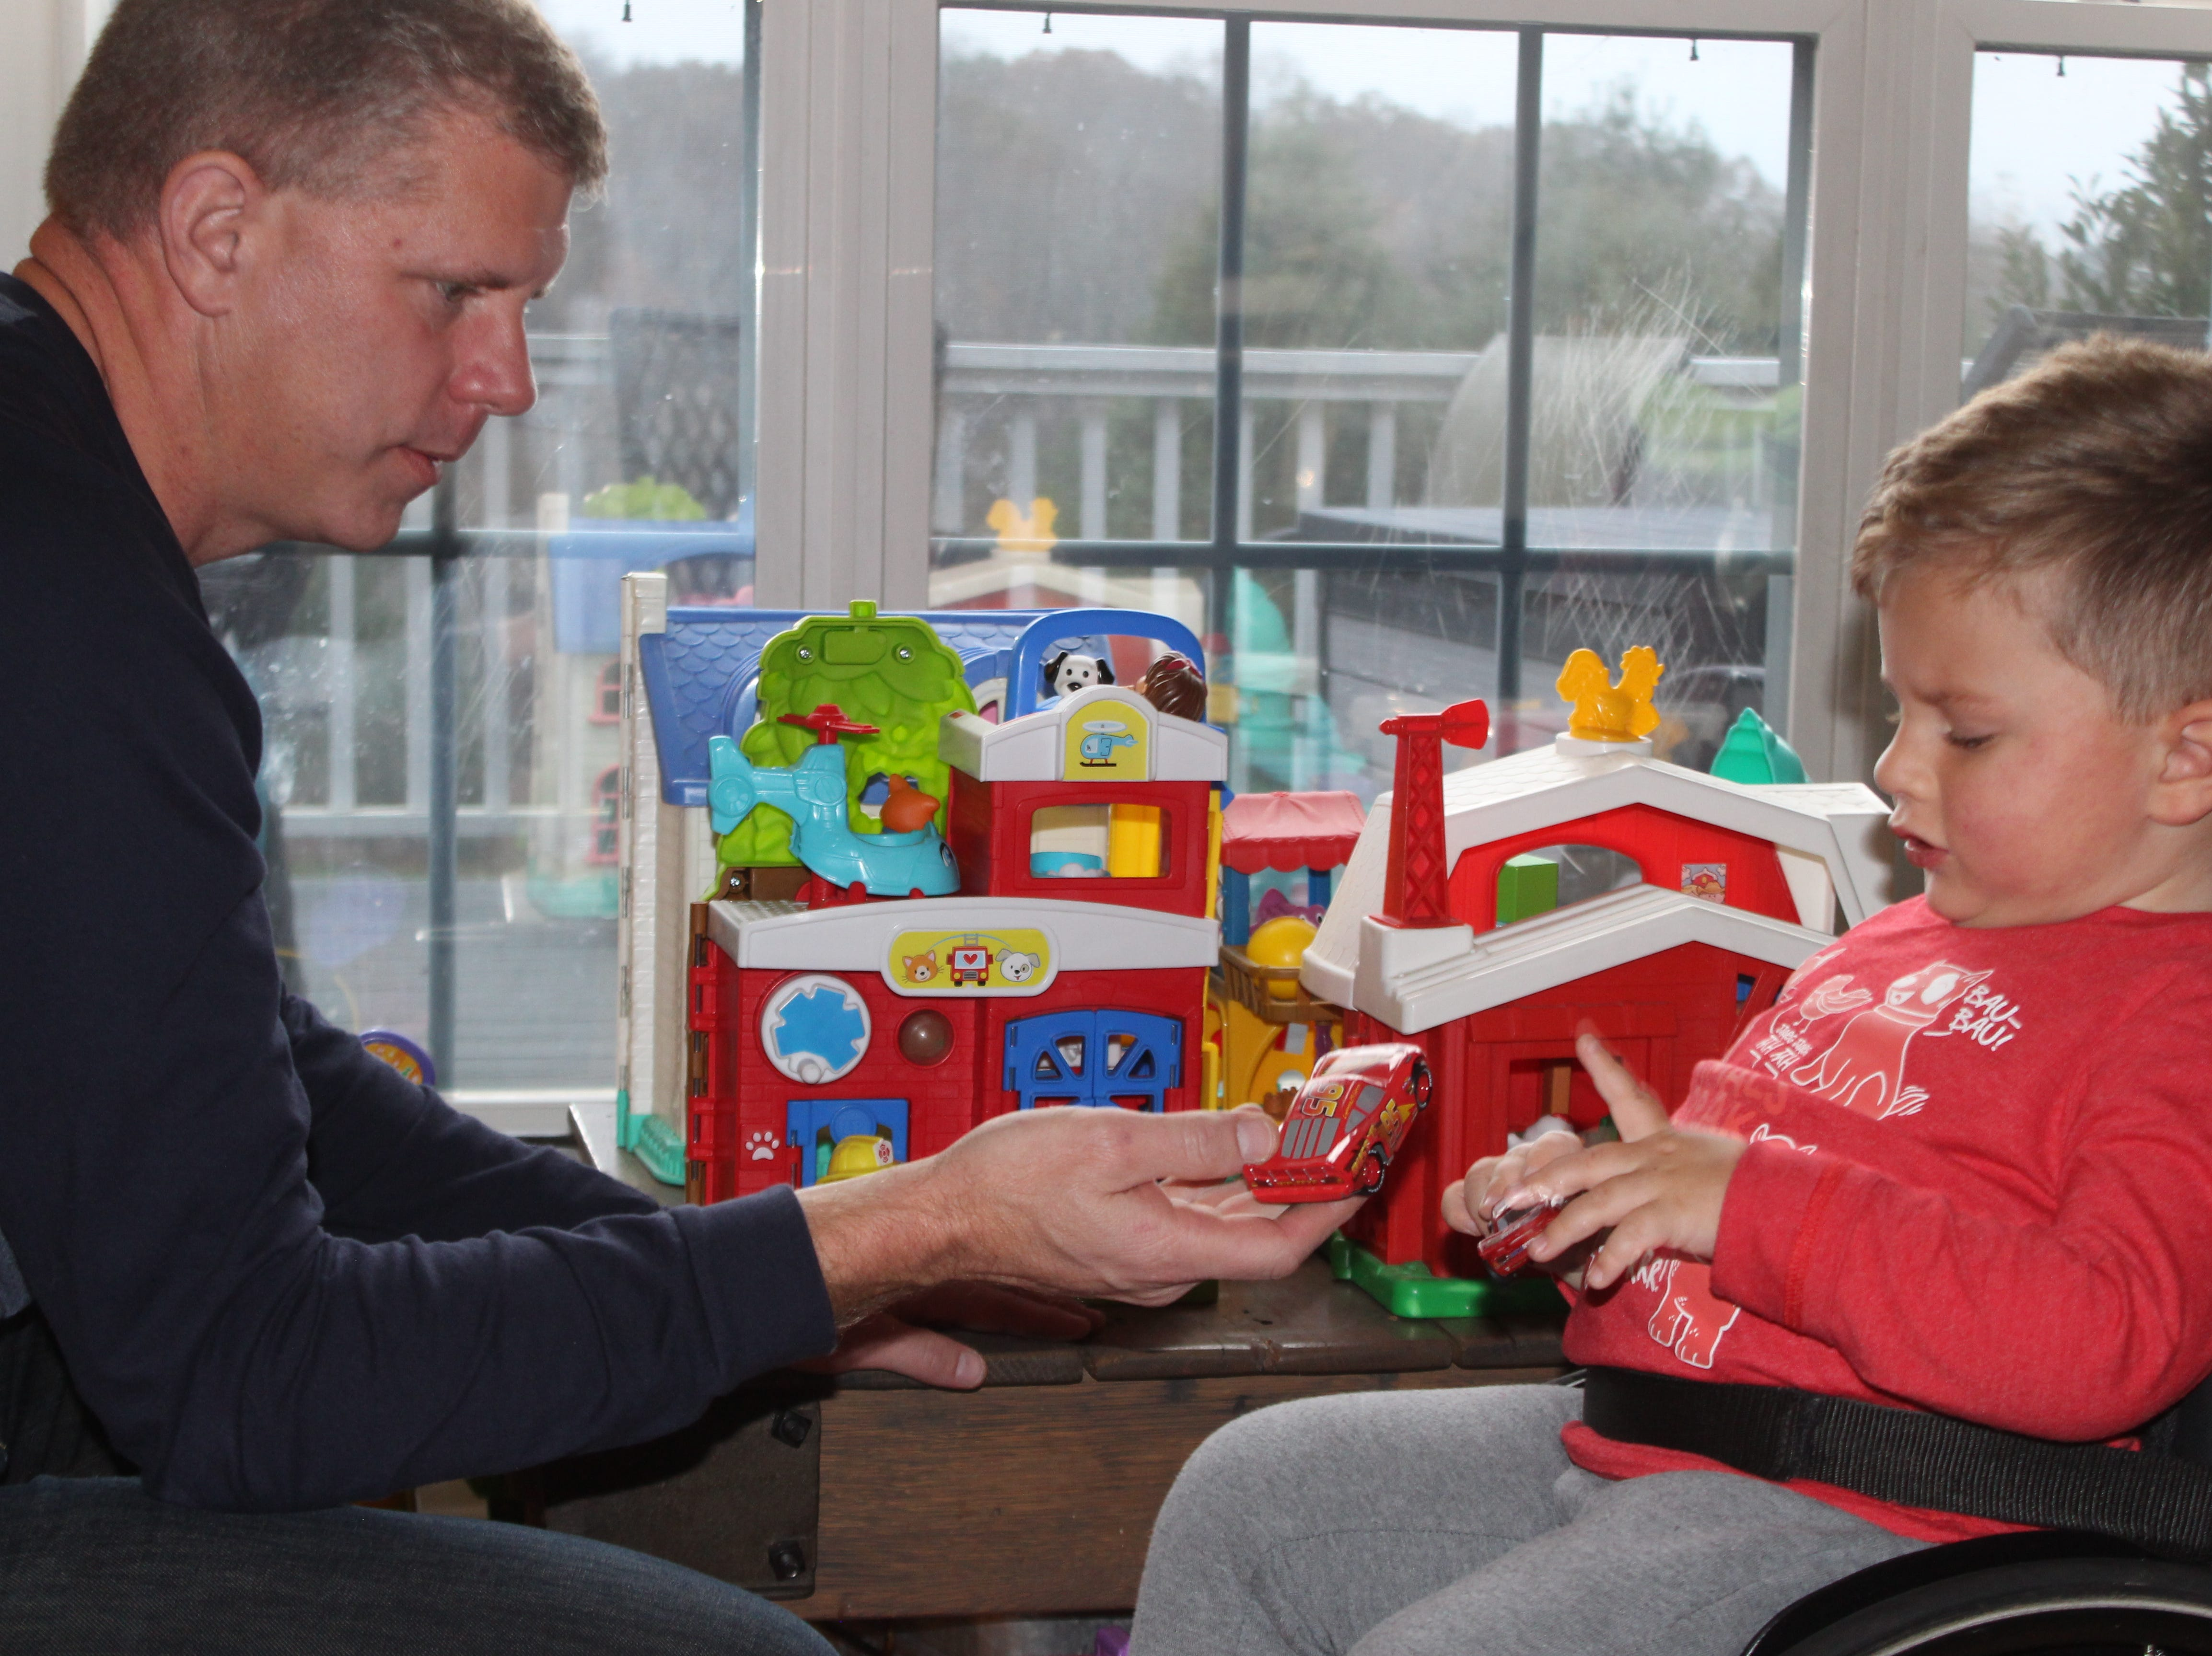 Oliver Schaper, who is receiving a first-of-its-kind treatment for spinal muscular atrophy, plays with his toy cars with his dad Keith.